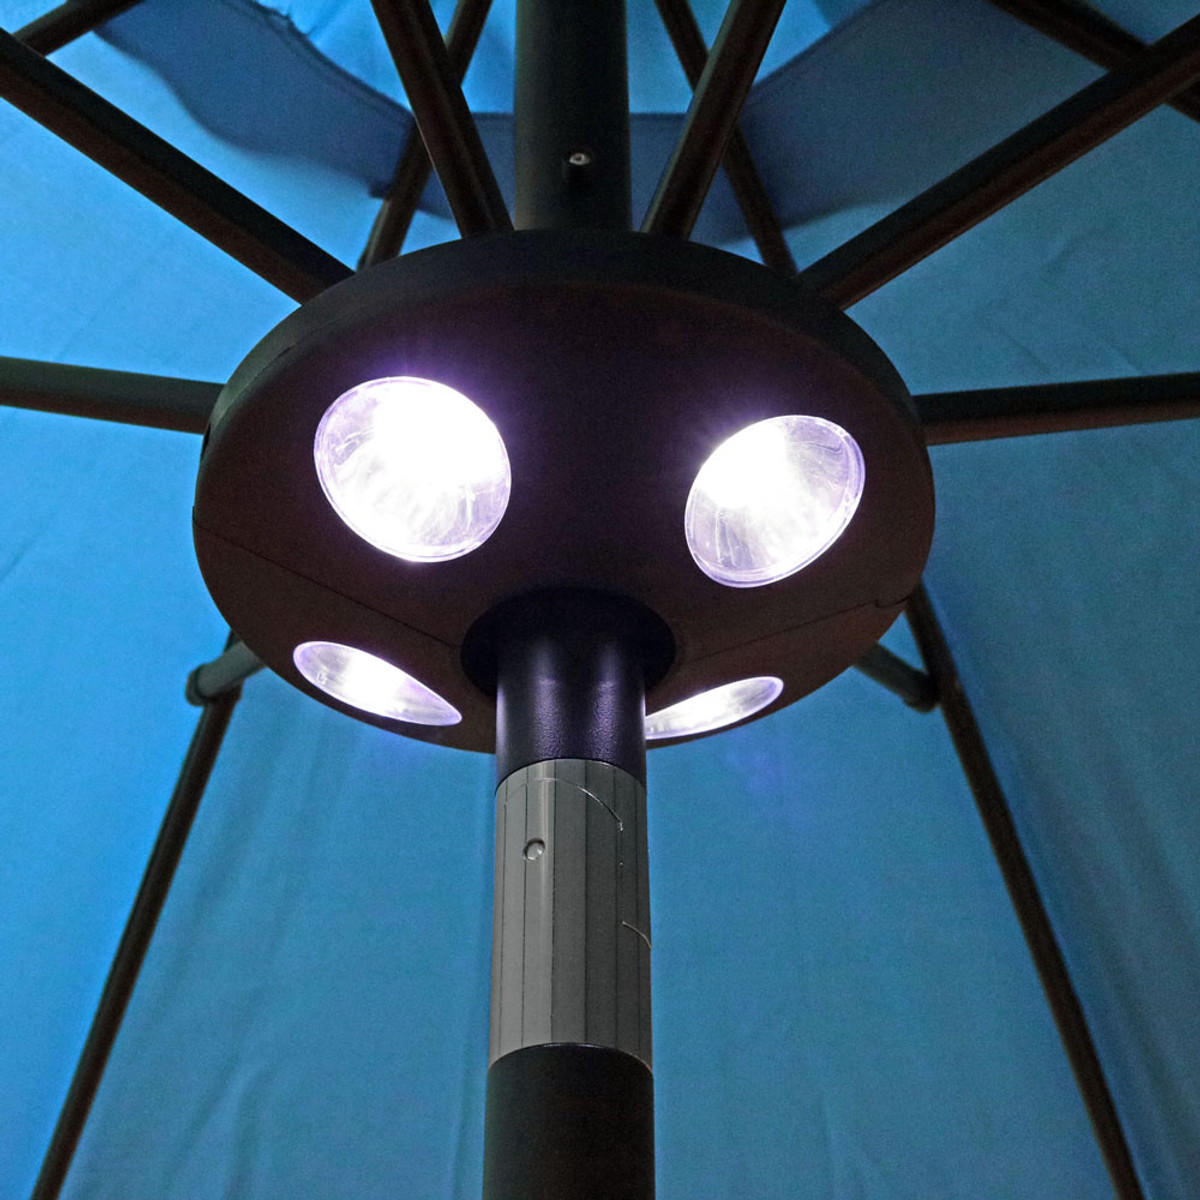 Exceptionnel Sunnydaze Battery Operated Patio Umbrella Pole Light, 4 LED Lights